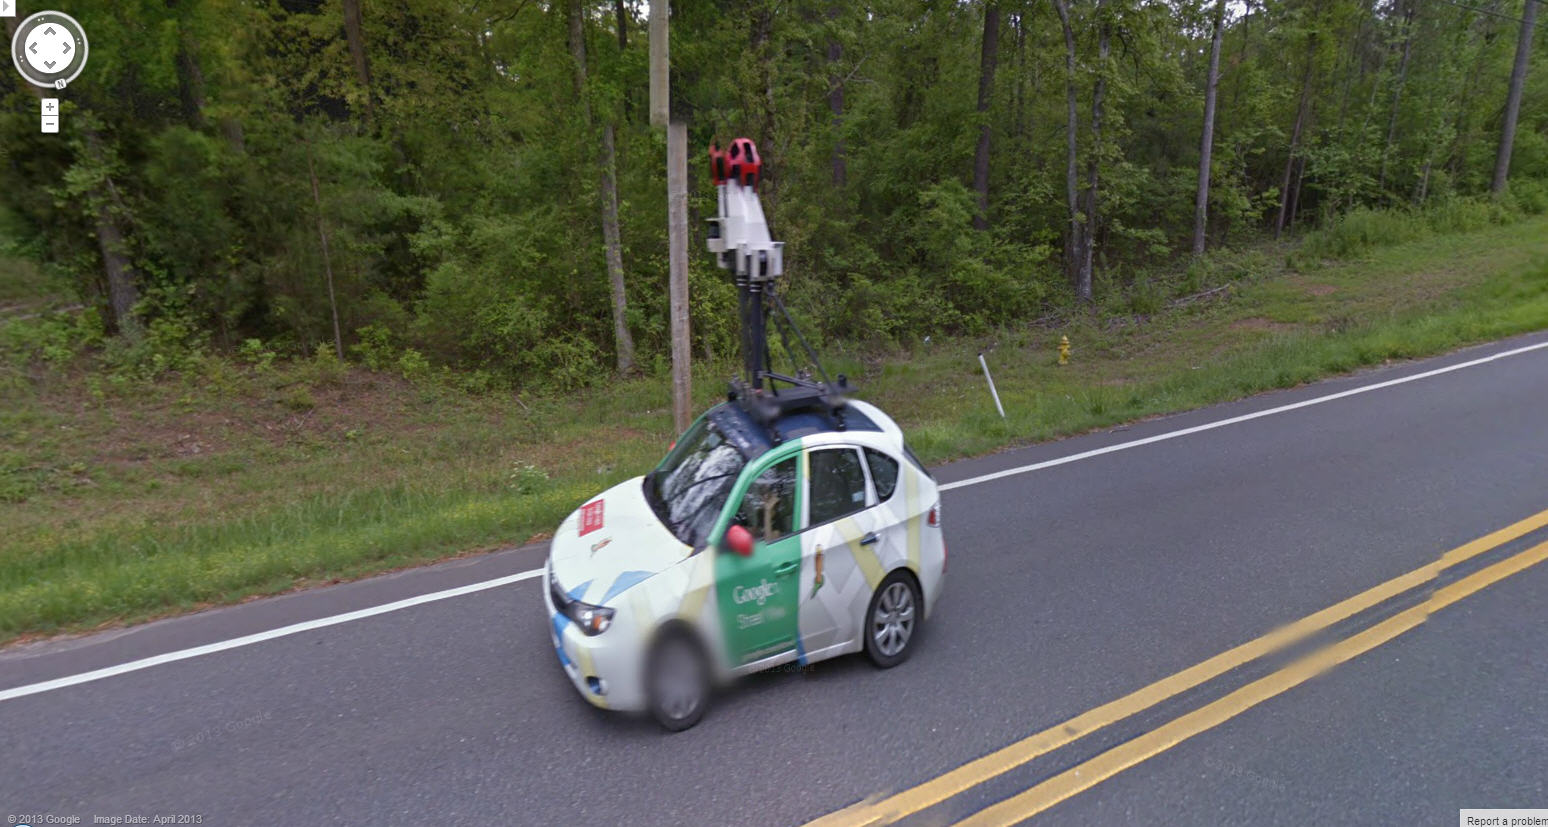 Mini Google Street View Car | Google Street View World | Funny ... on funny calendar, street view maps, funny windows, mount buffalo national park maps, funny search, funny aerial maps, funny apple, funny mail, funny pat down at the airport, funny movies, funny blogs, funny flickr, funny twitter, funny camera, bing maps, good maps, funny project road map, funny facebook, funny youtube videos,